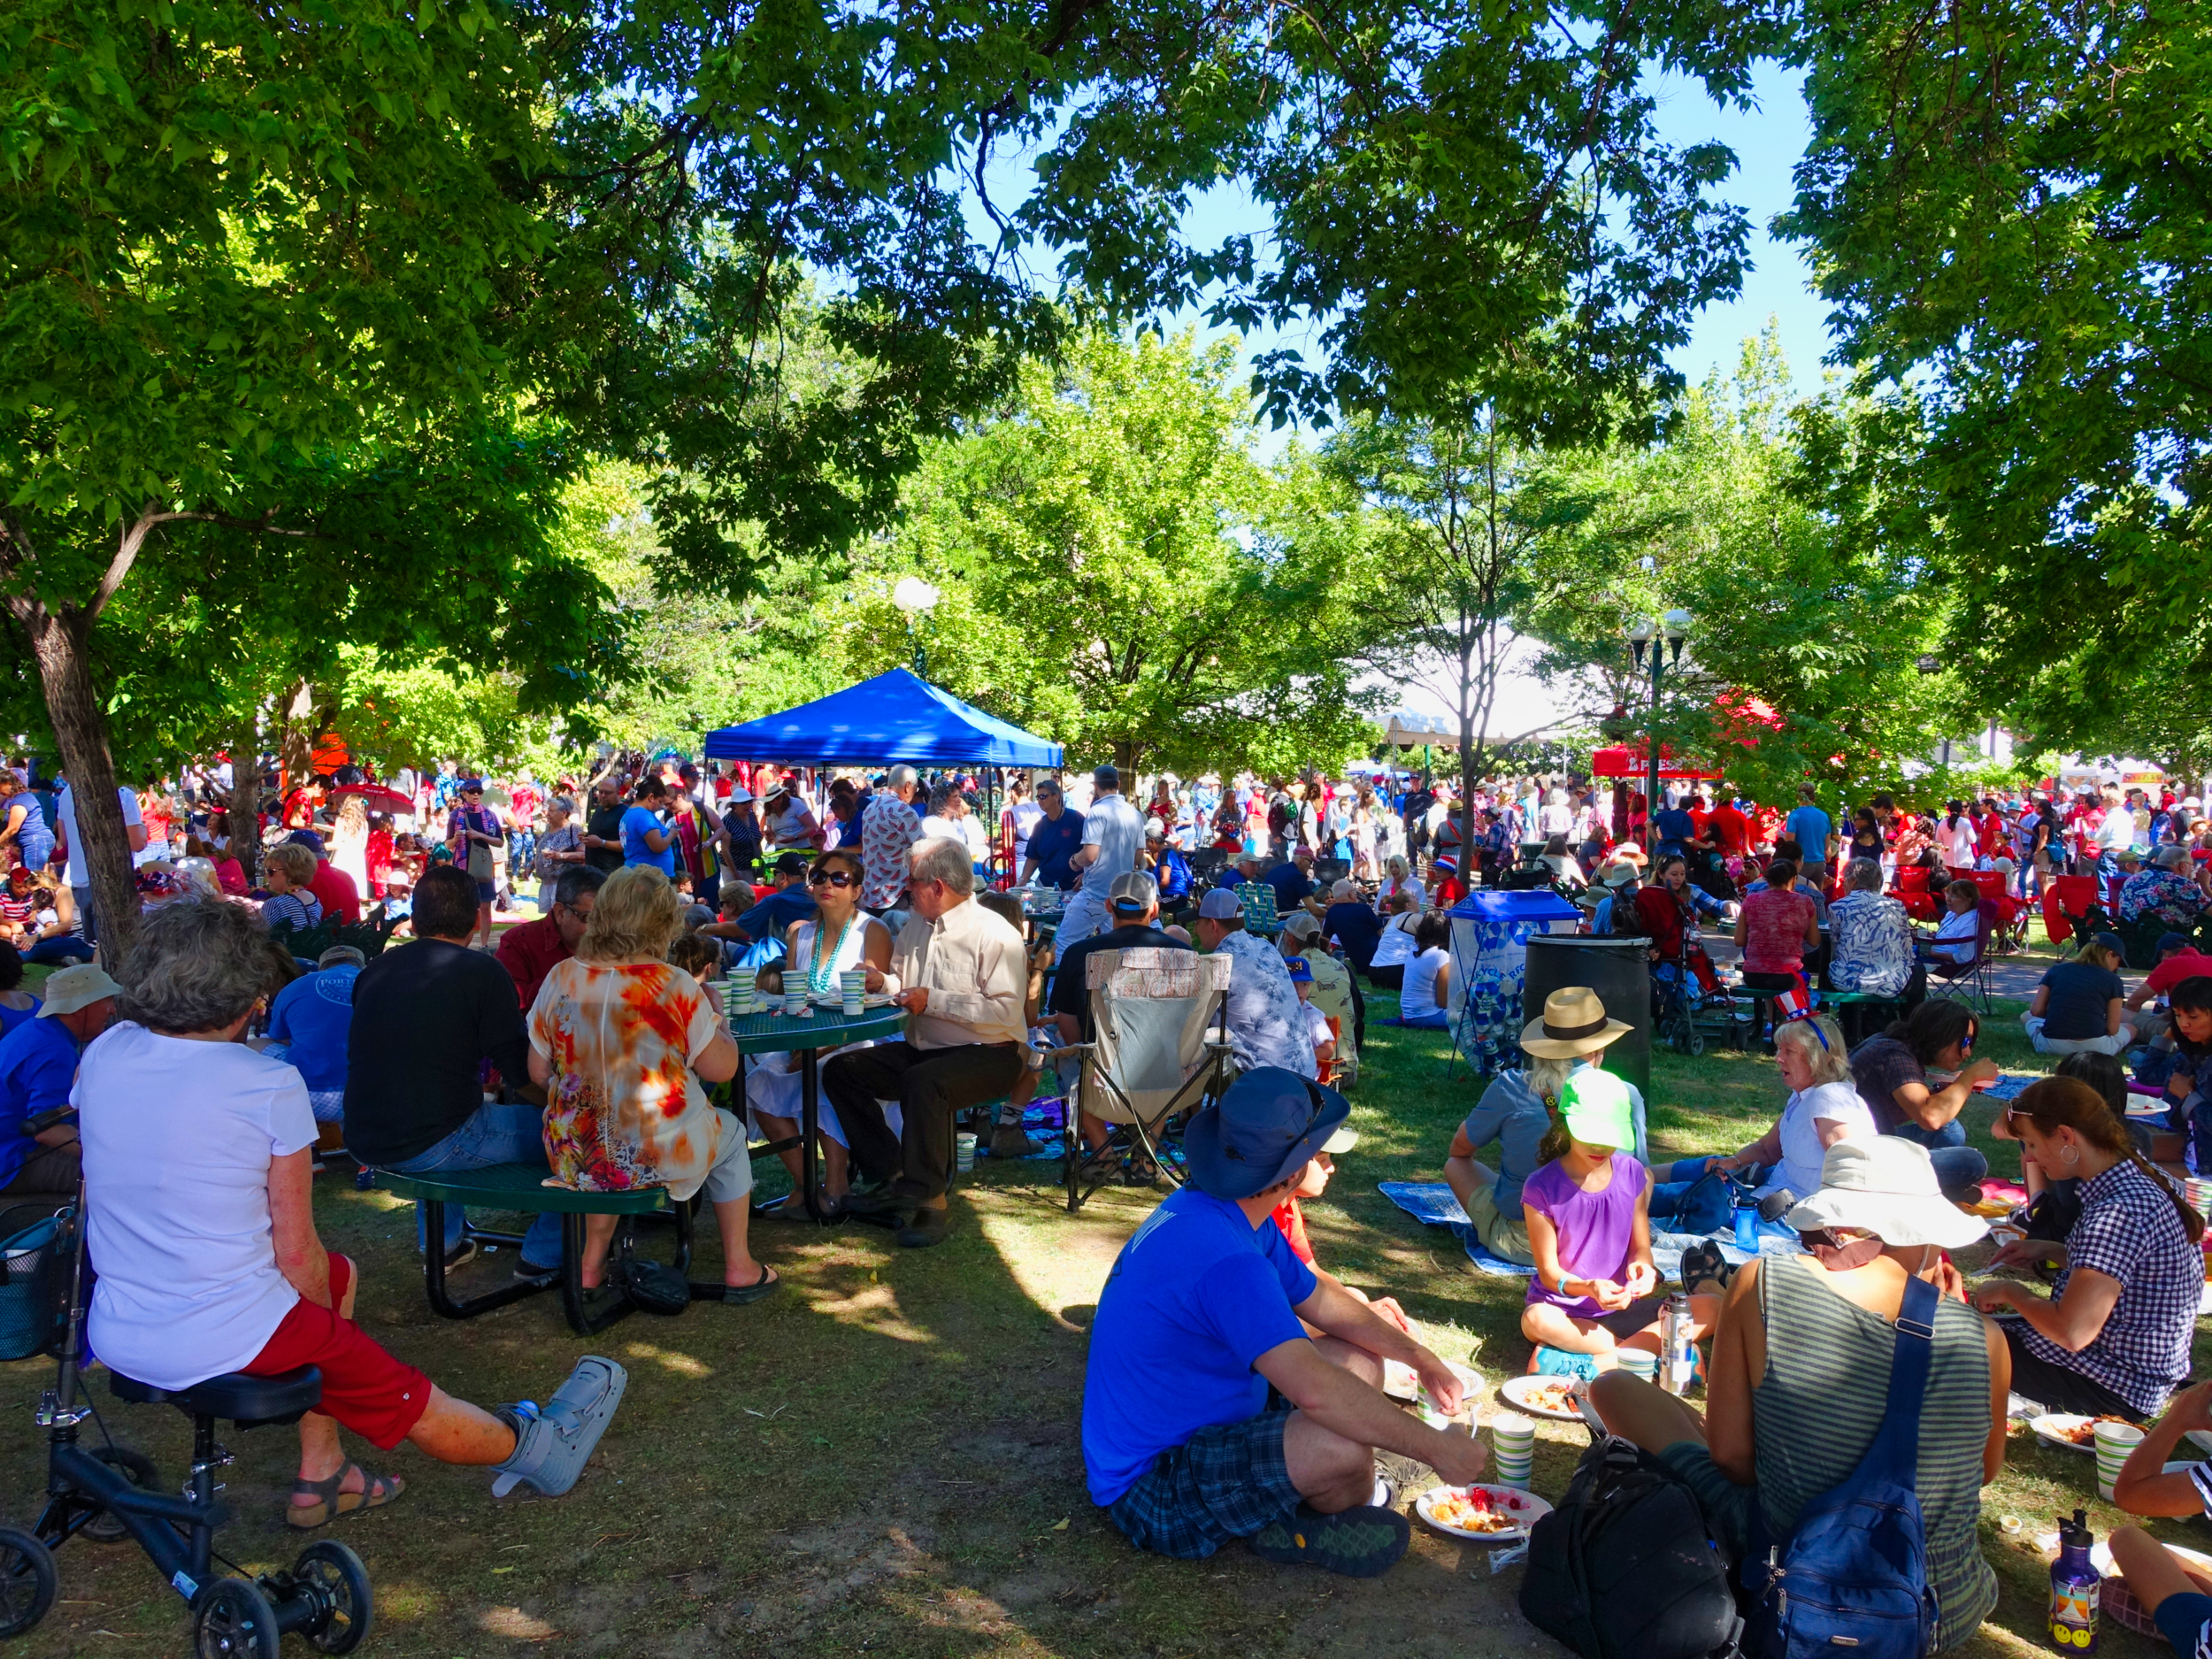 The day was perfect. Folks enjoying the pancakes in the shade.